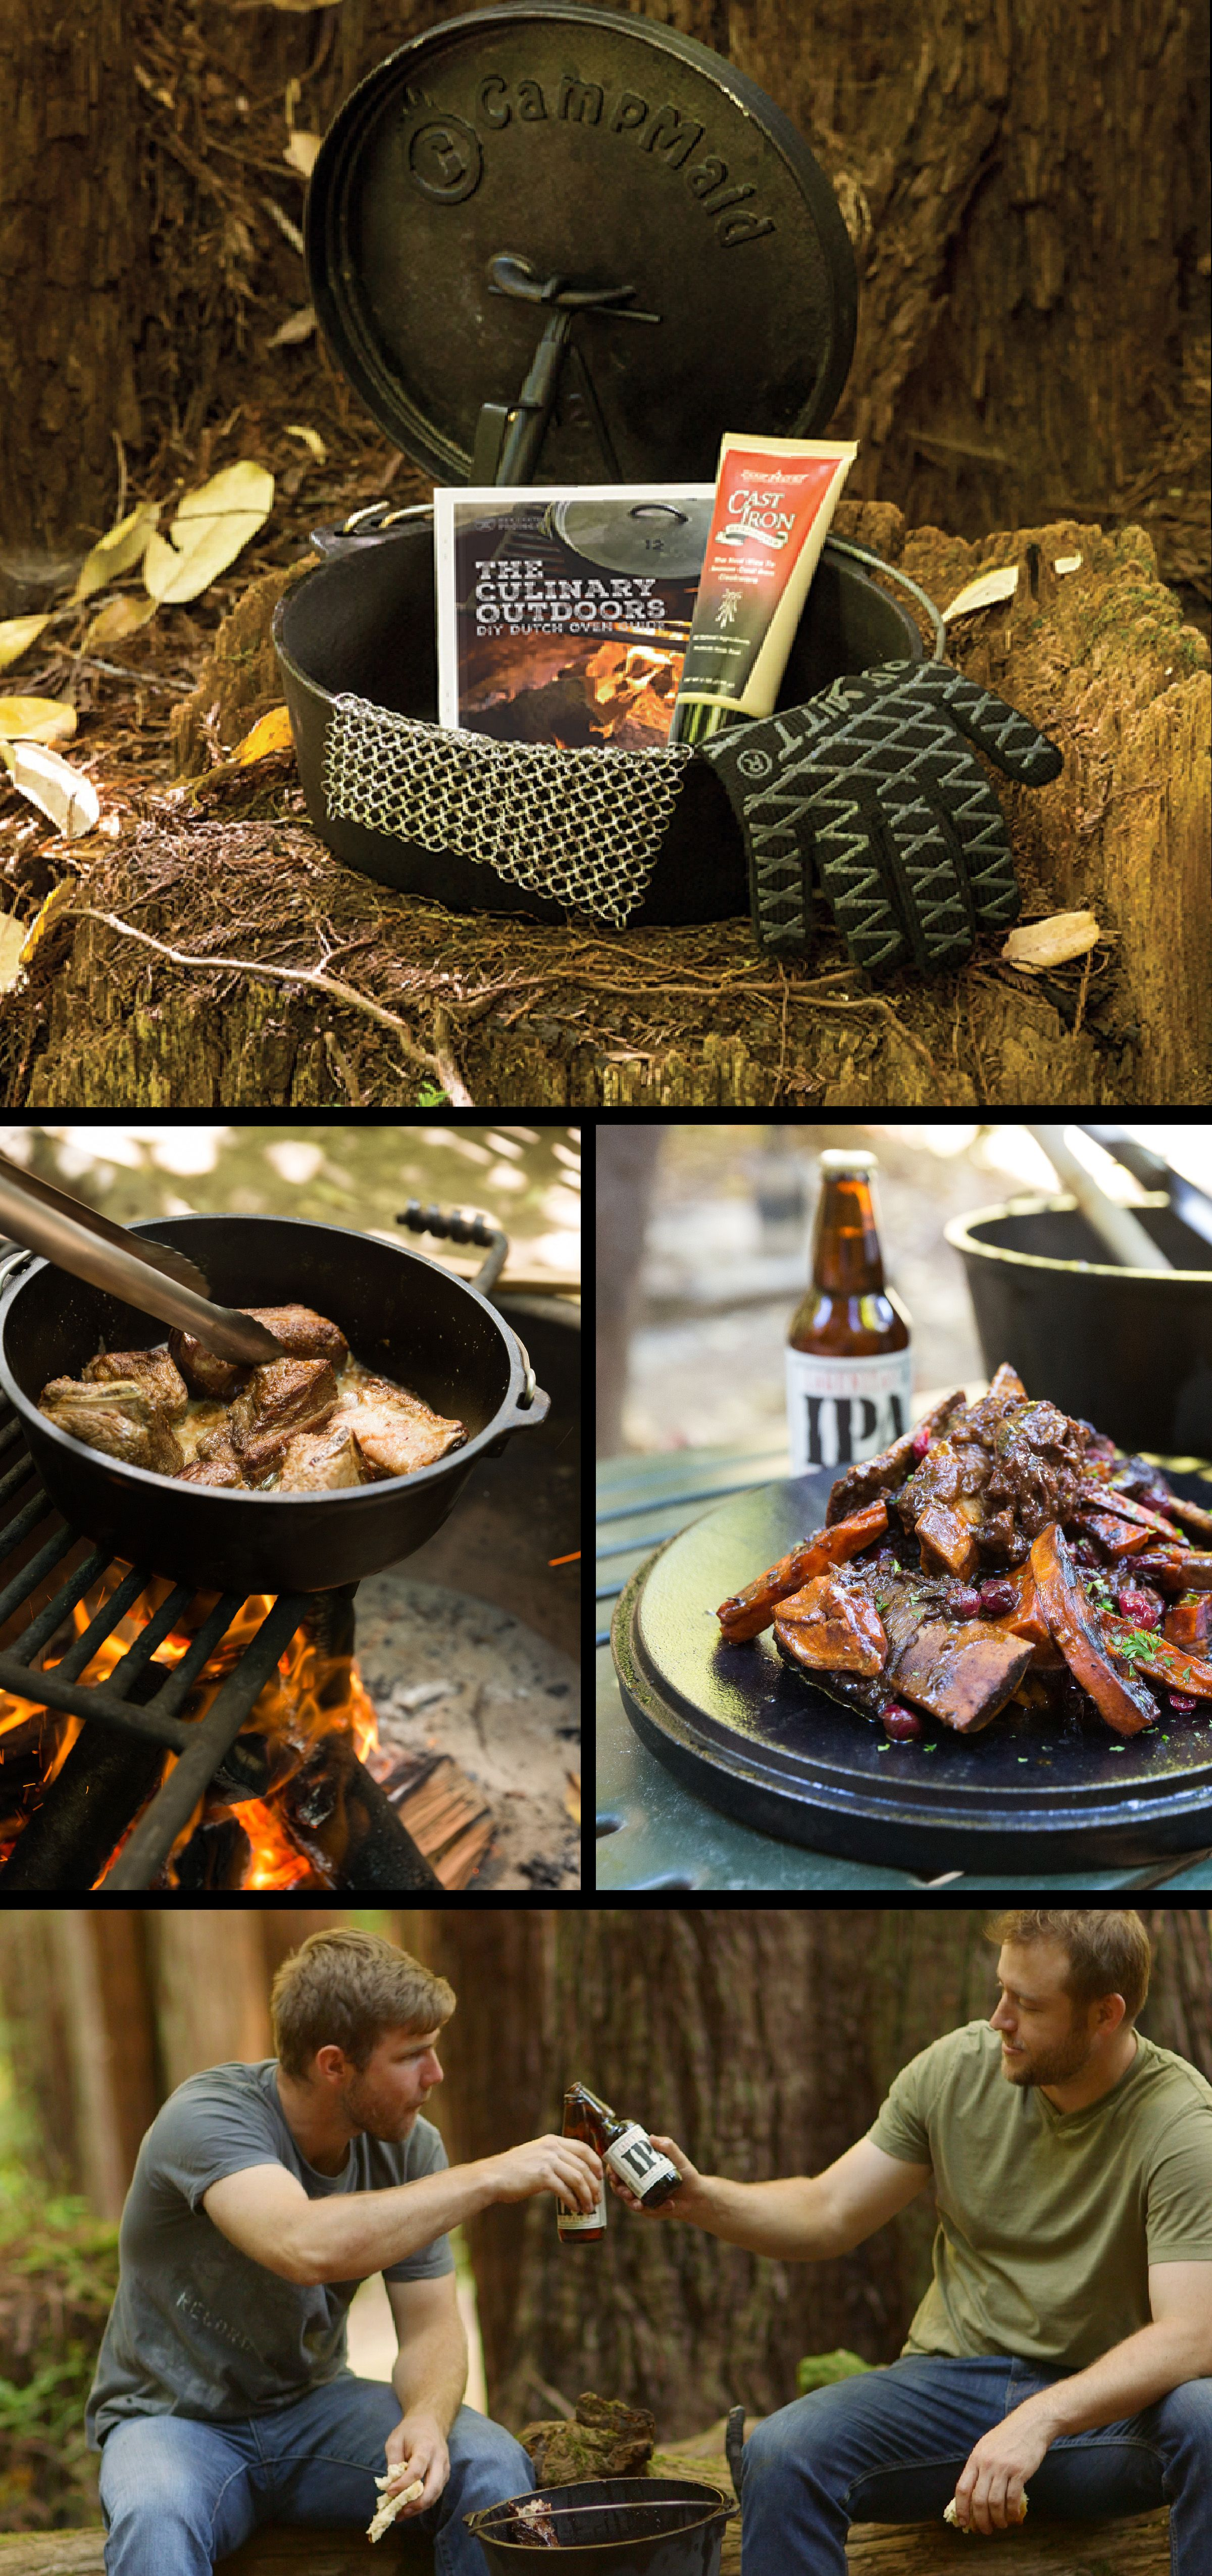 Dutch oven kit grilling gifts gifts for cooks cool